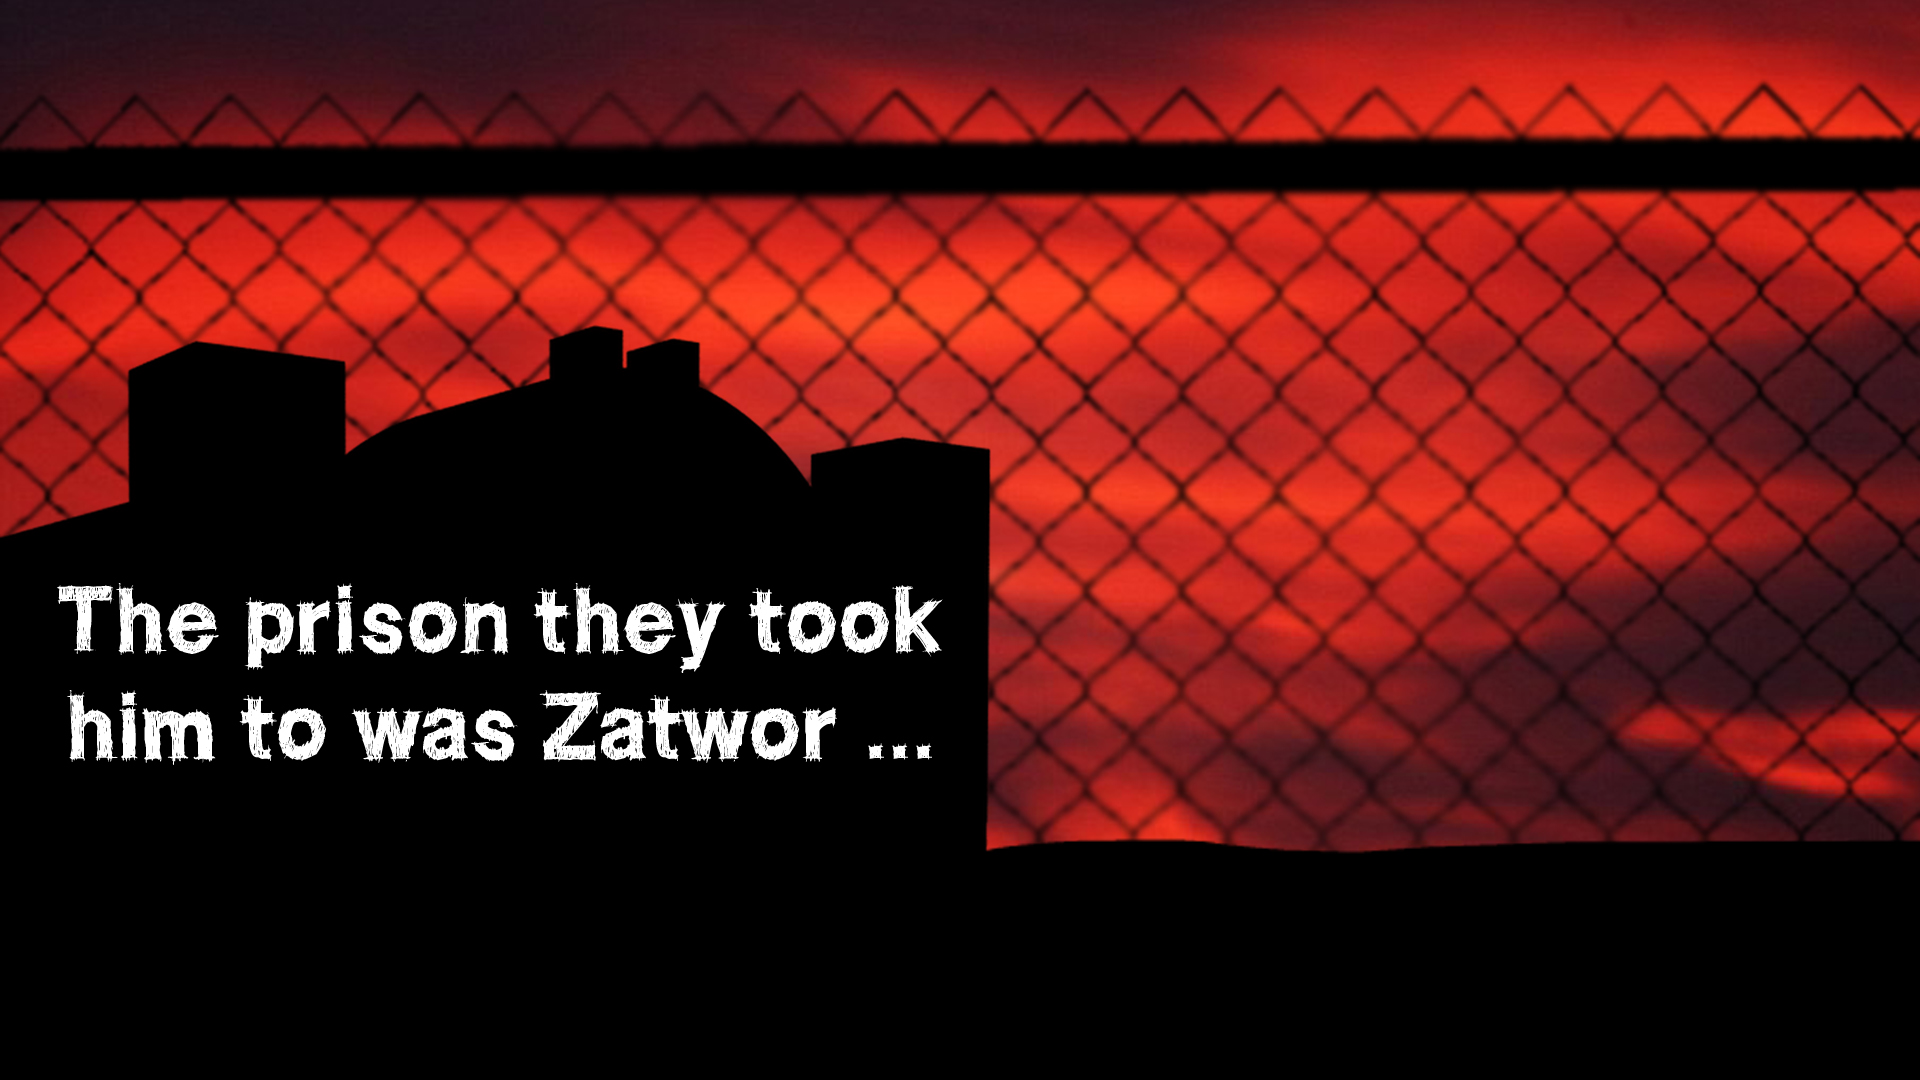 Absconding Zatwor Backgrounds, Compatible - PC, Mobile, Gadgets  1920x1080 px